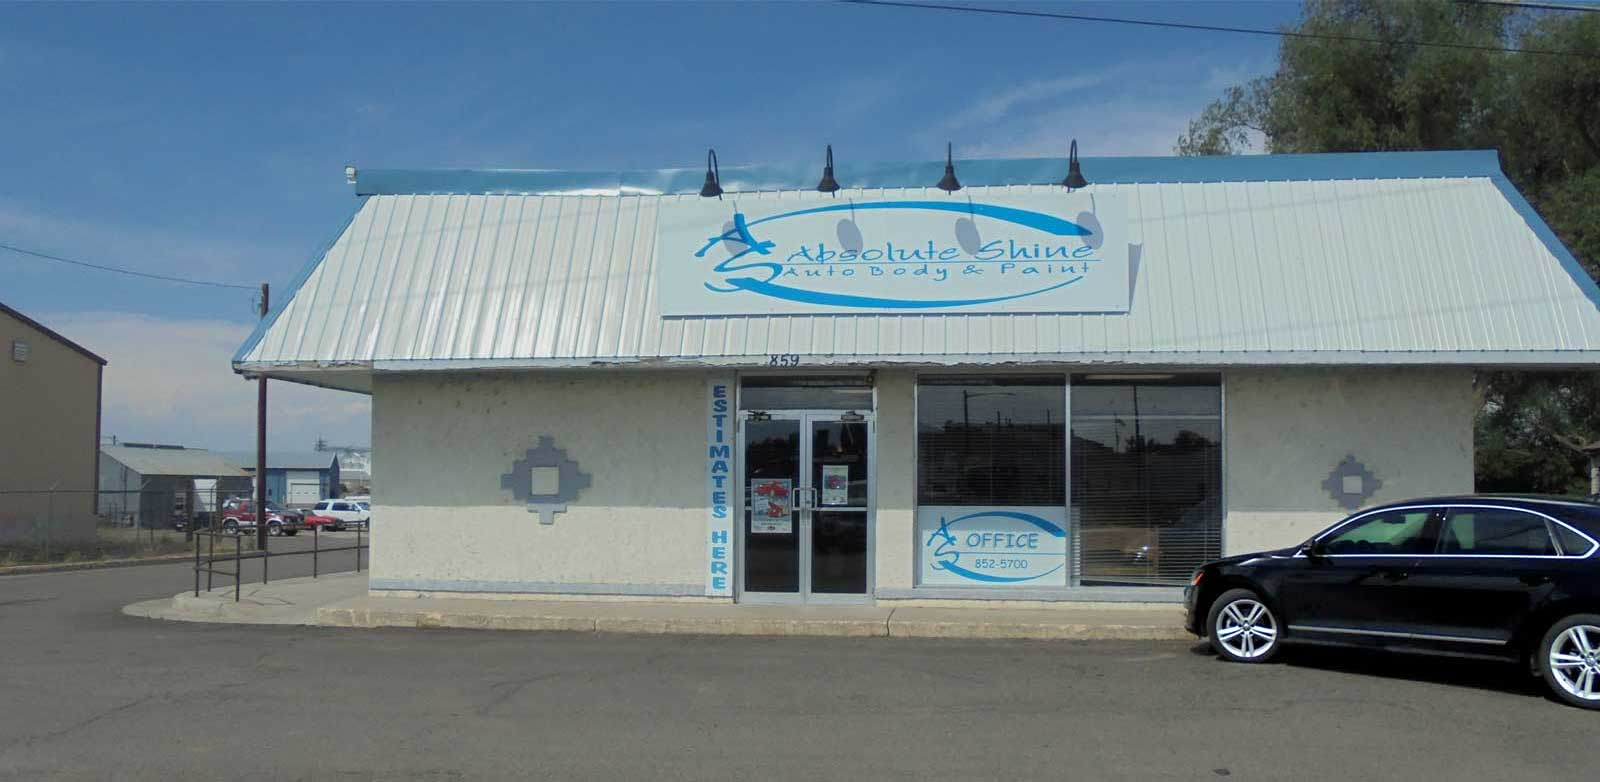 Auto Body Shop in Monte Vista - Absolute Shine Auto Body & Paint